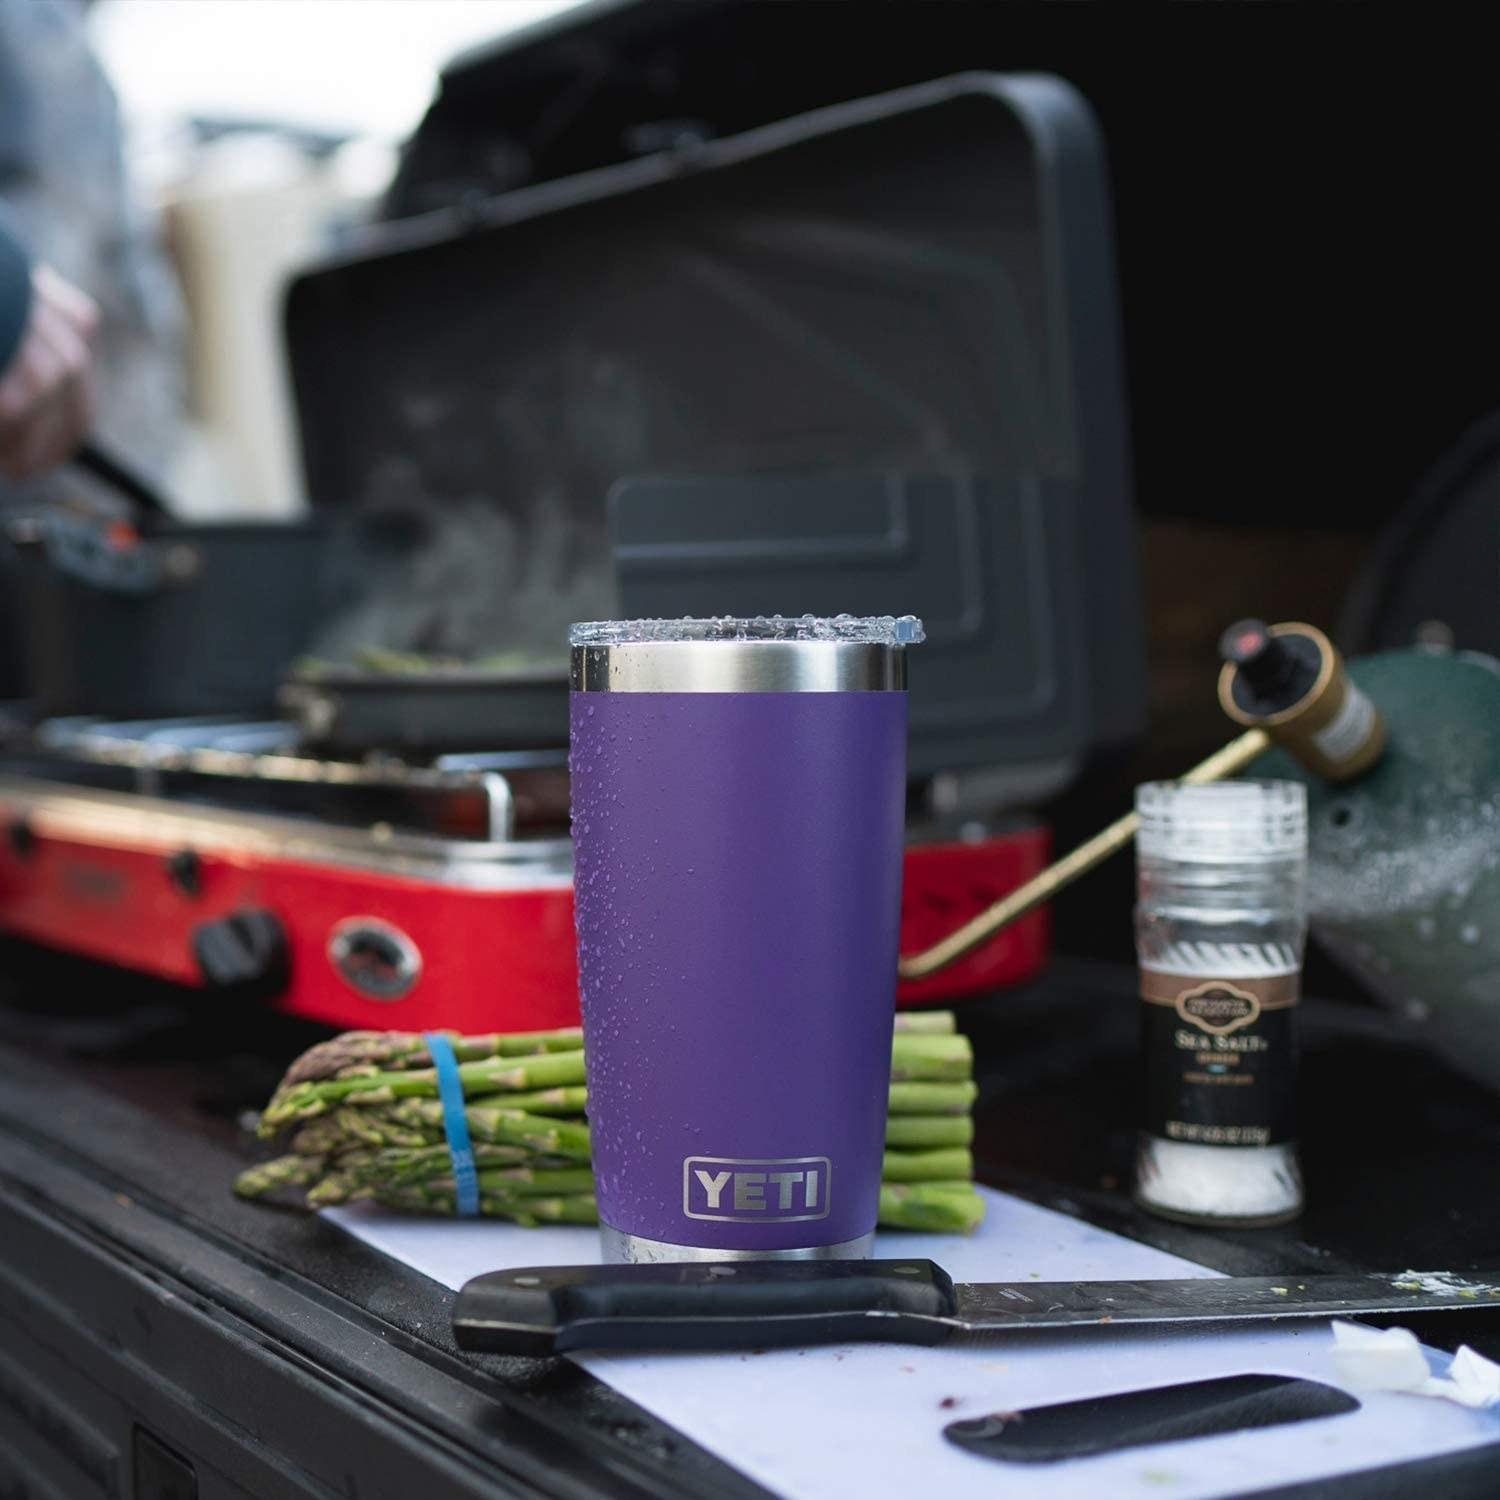 the purple yeti rambler on a grill next to asparagus